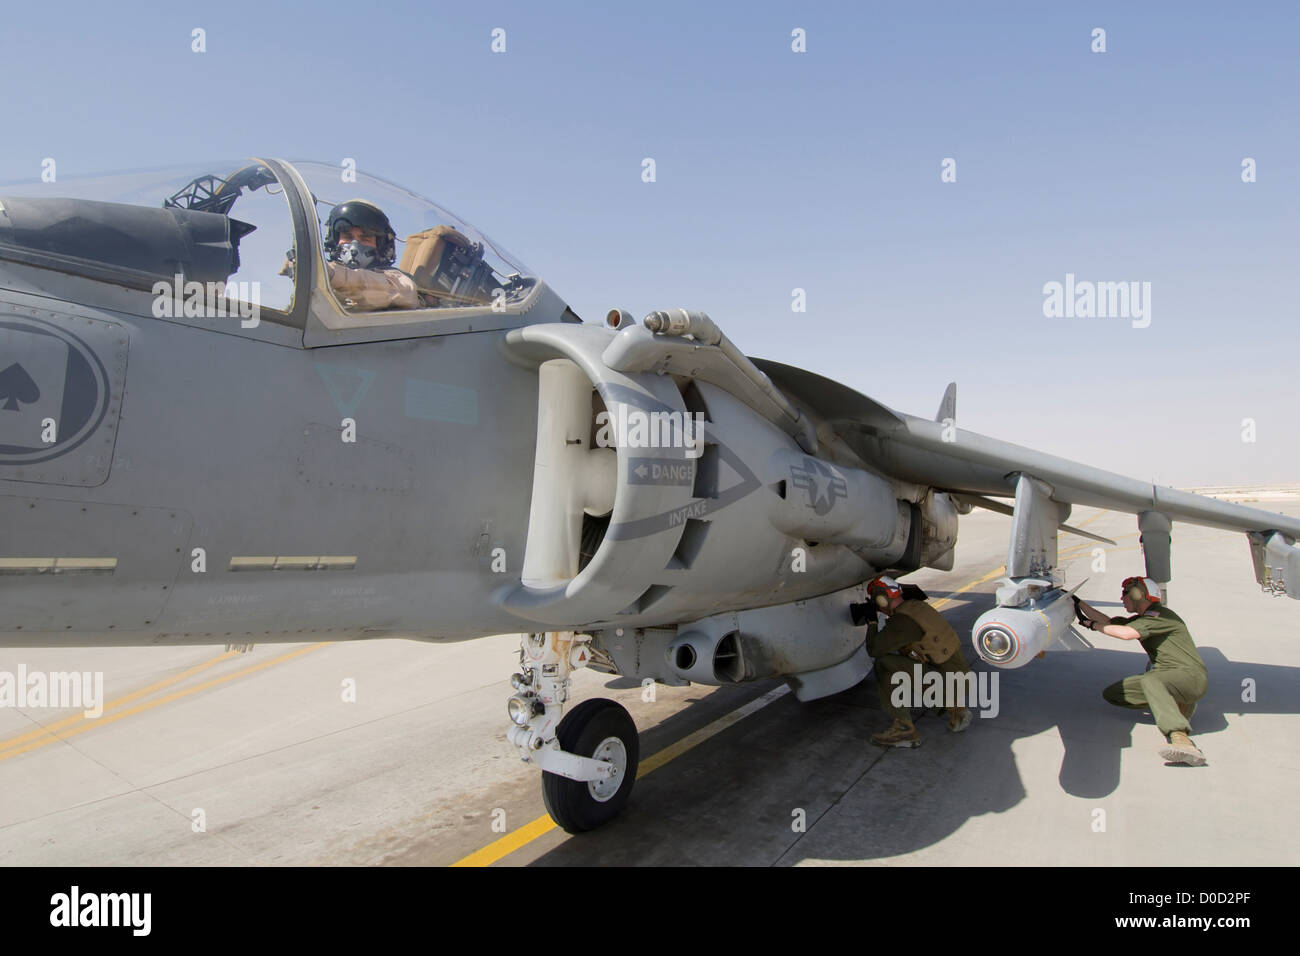 A US Marine Arms Laser Maverick Air Ground Missile Mounted on AV-8B Harrier Ready Launch Al Asad Air Base in Iraq's - Stock Image